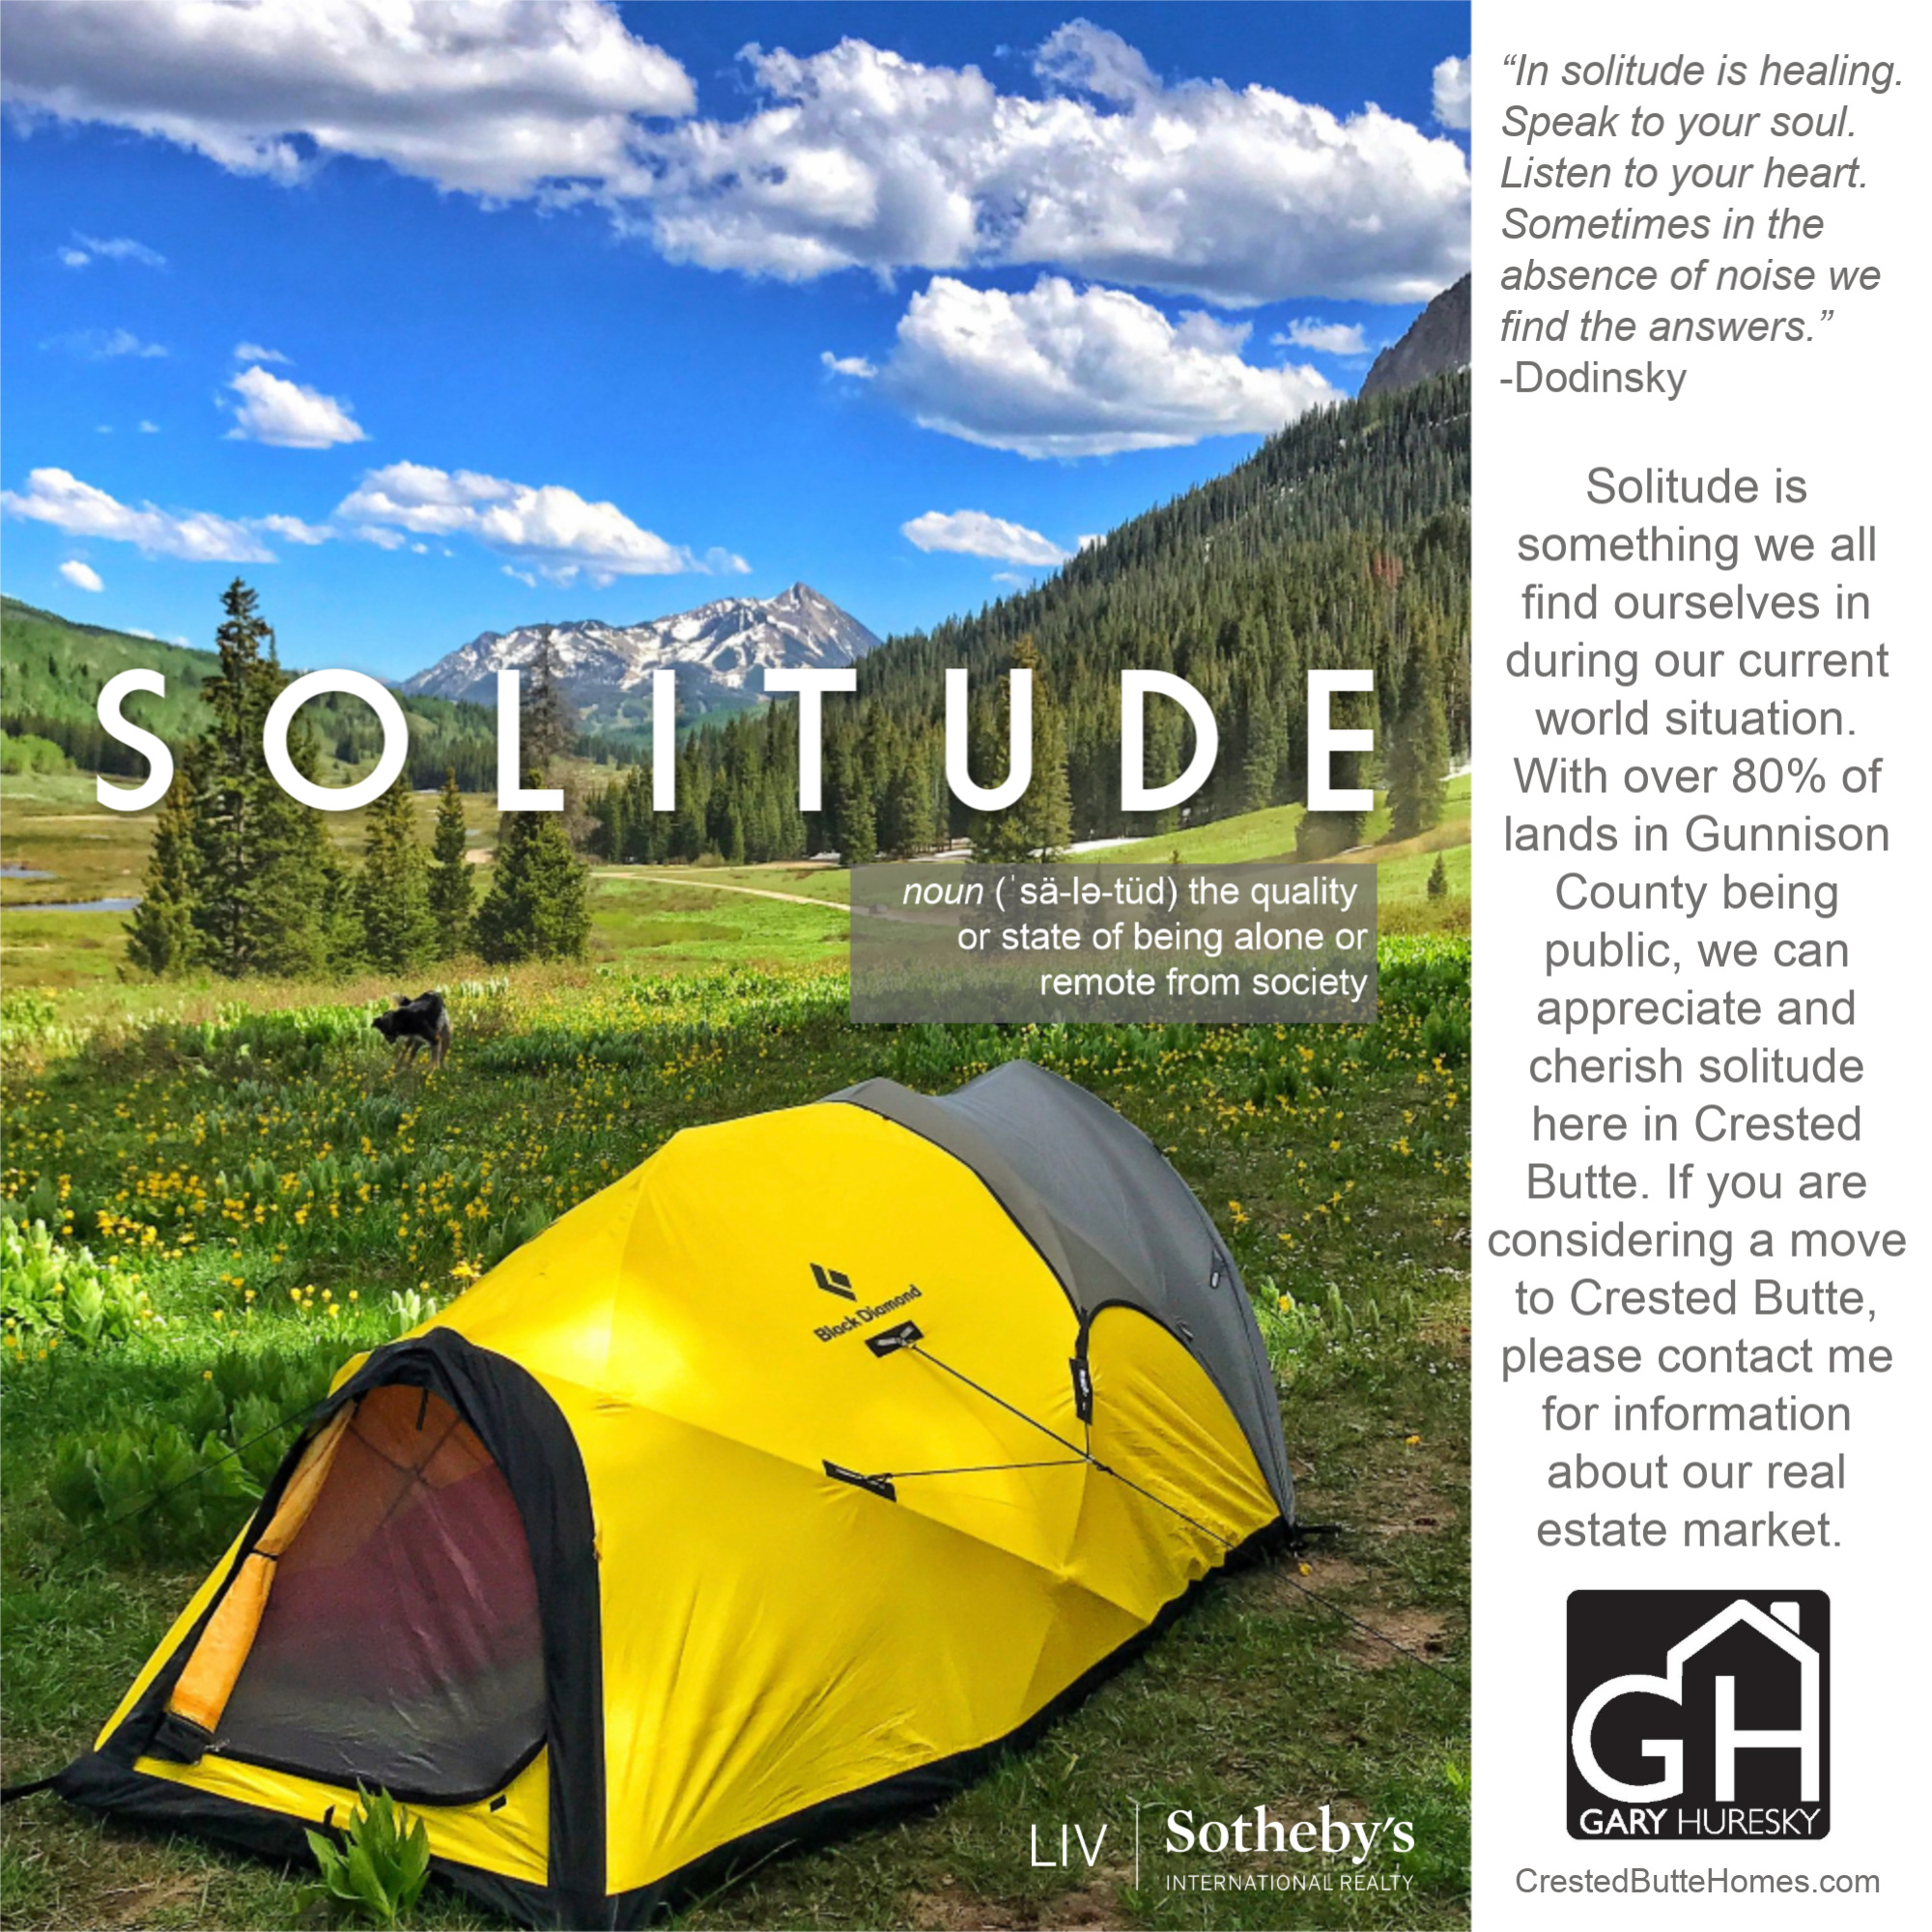 Social Distancing Activities In Crested Butte